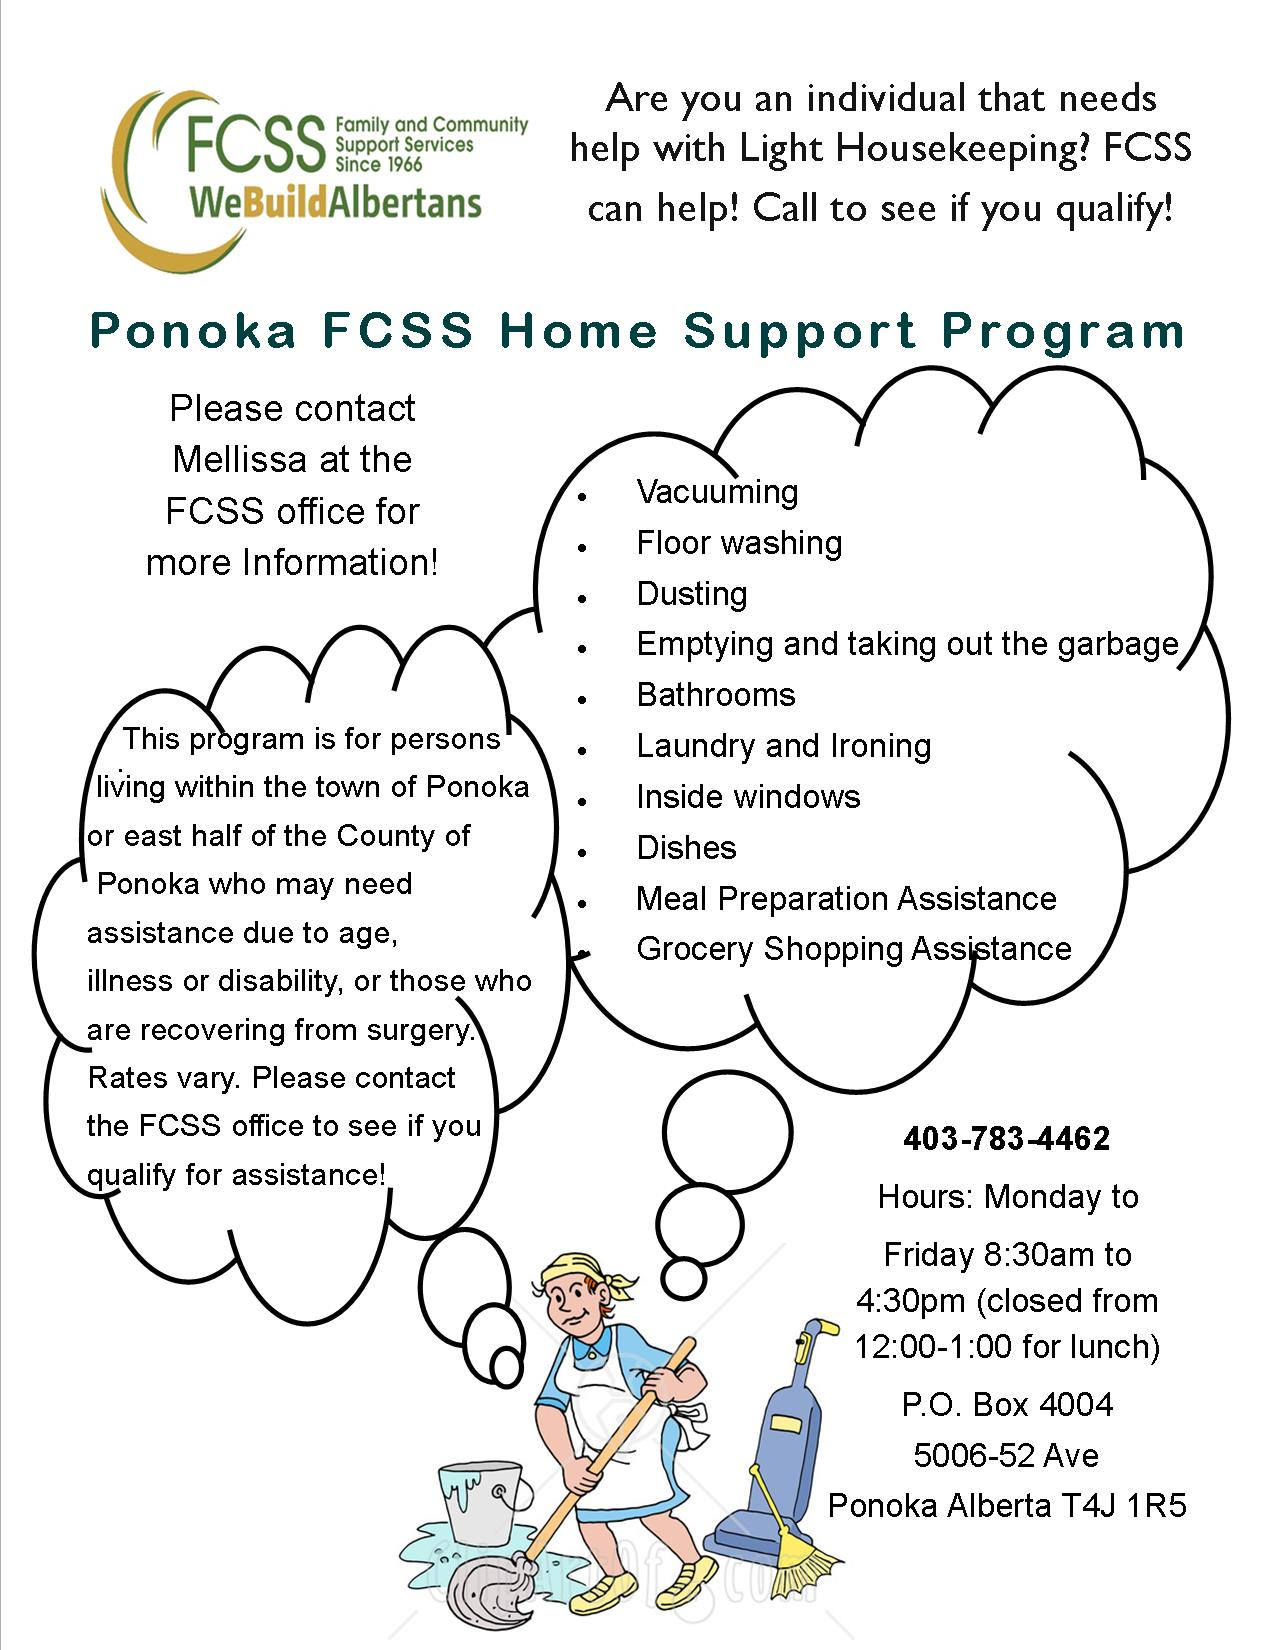 Home Support Clients Wanted - contact  403-783-4462 for more information